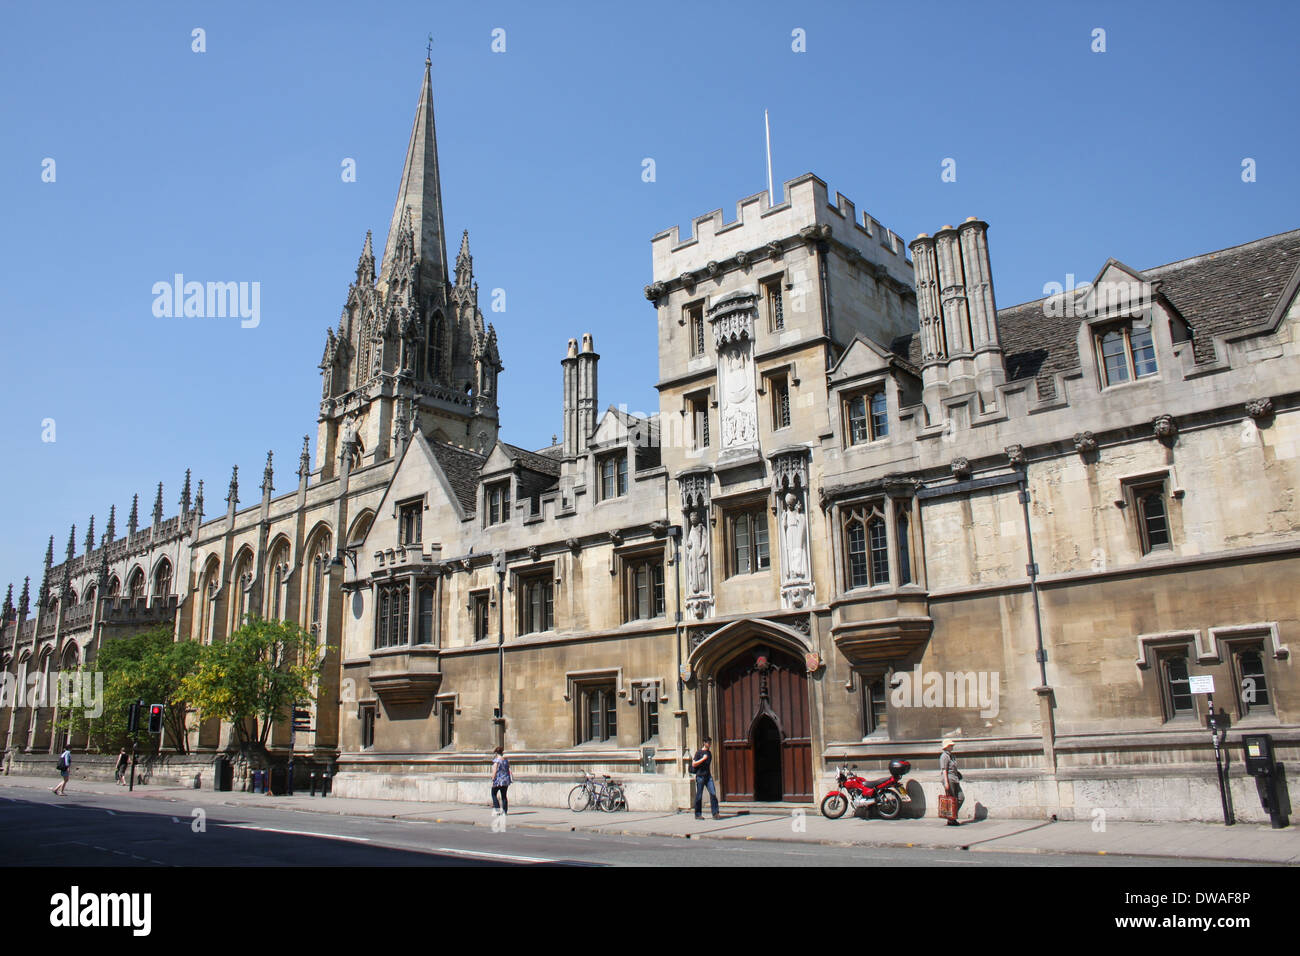 Brasenose College Oxford High Street UK. - Stock Image